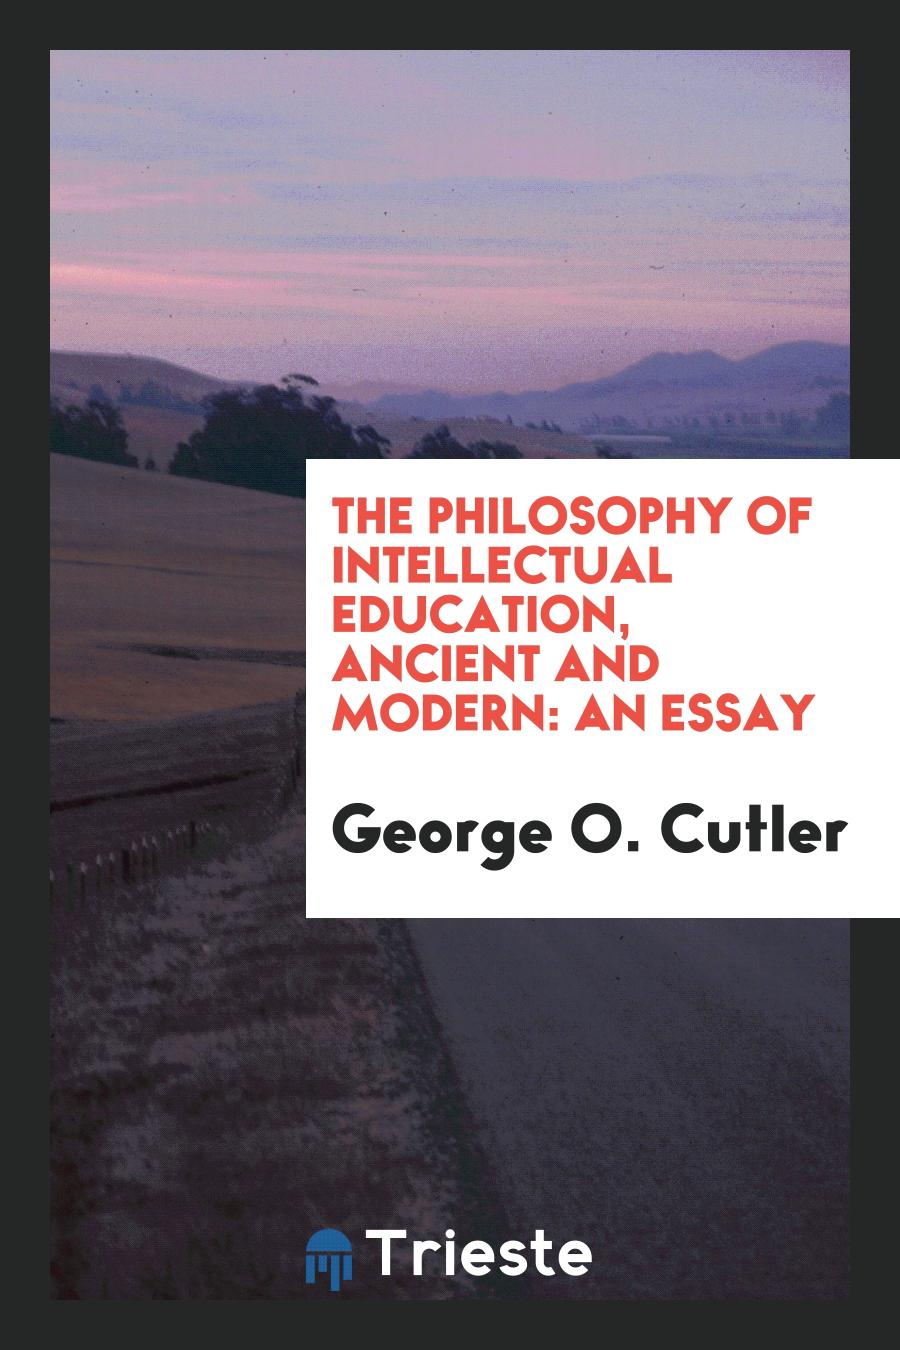 The Philosophy of Intellectual Education, Ancient and Modern: An Essay